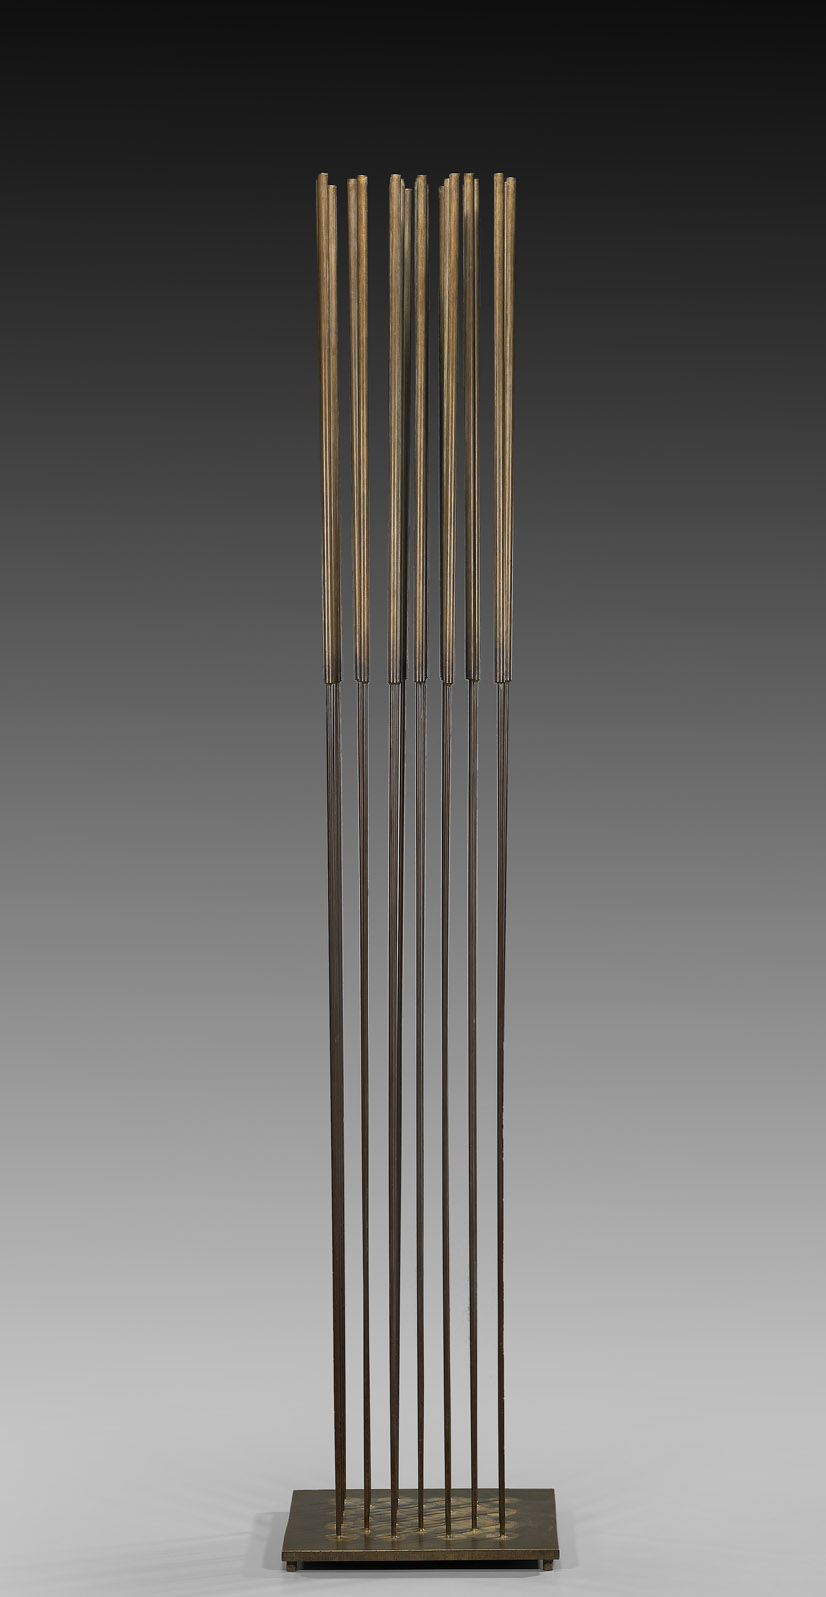 Sonambient , circa 1970  beryllium copper and brass  50 x 10 x 10 inches; 127 x 25.4 x 25.4 centimeters